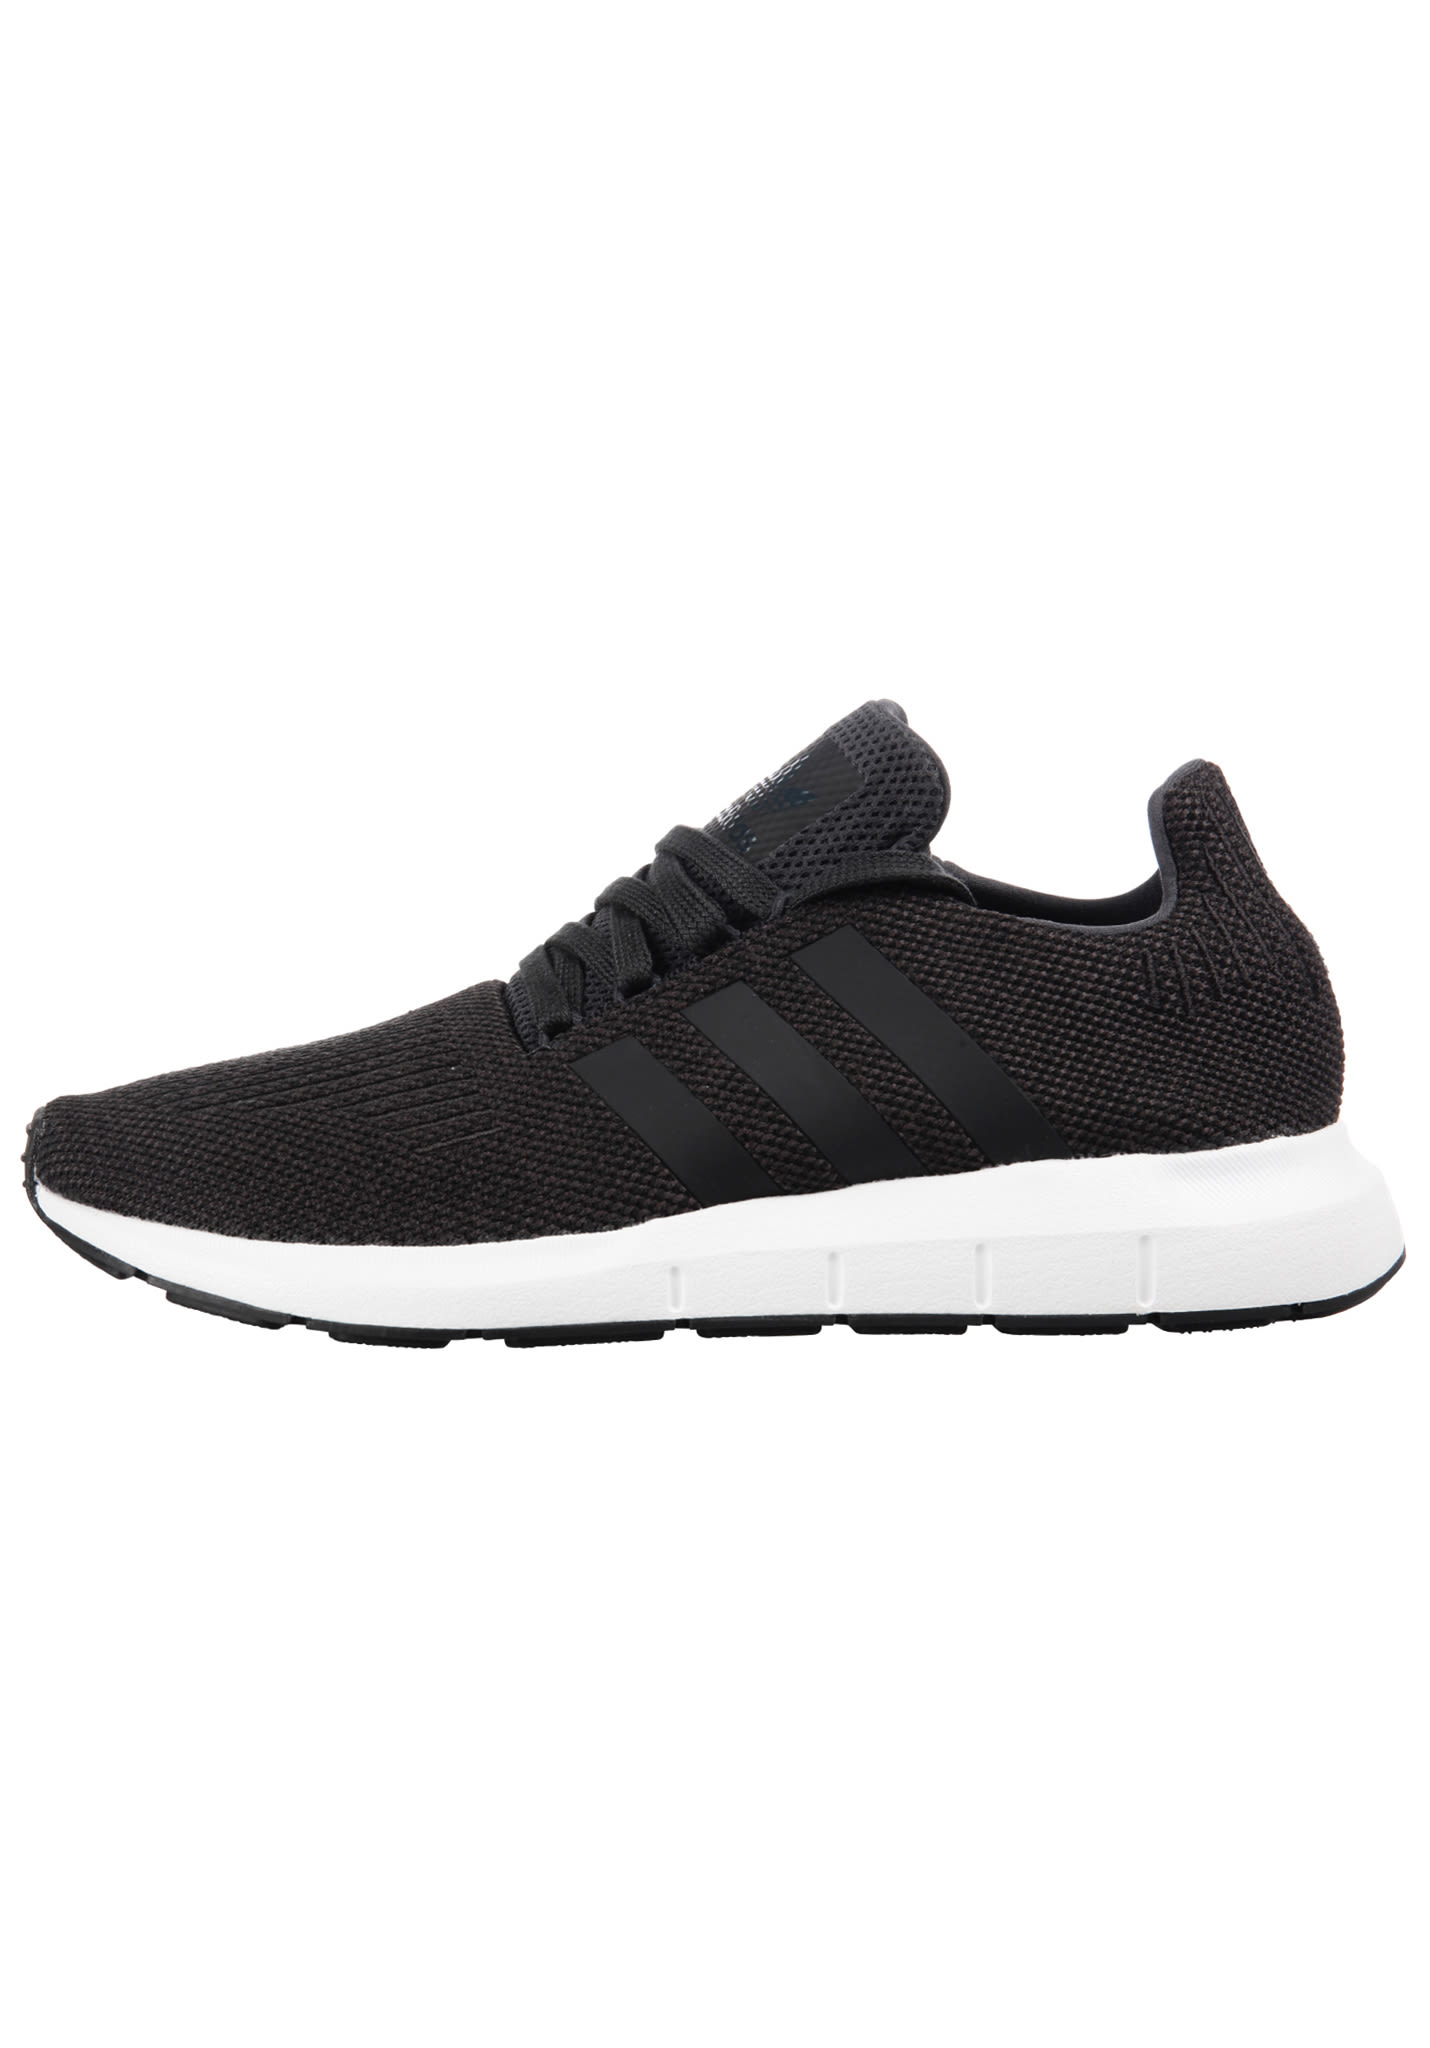 0b40342c242ce ADIDAS ORIGINALS Swift Run - Sneakers for Men - Black - Planet Sports